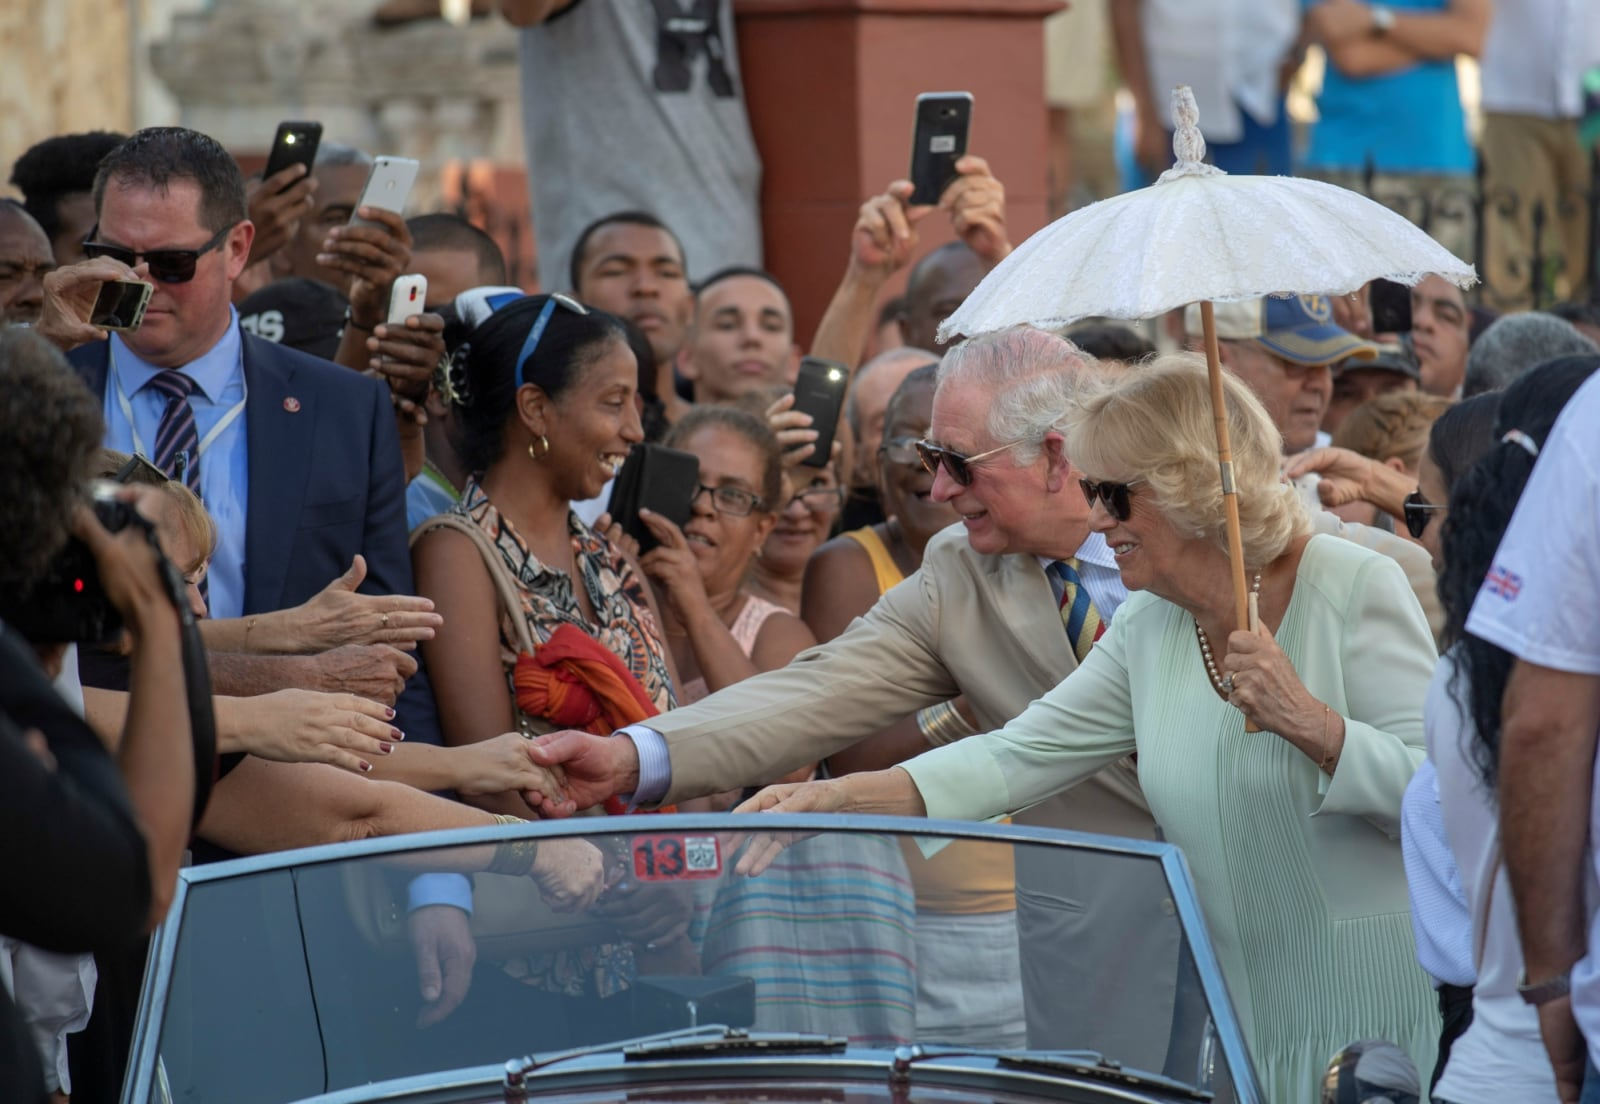 Britain's Prince Charles and Camilla, Duchess of Cornwall meet locals at a British Classic Car event in Havana, Cuba March 26, 2019. Arthur Edwards/Pool via REUTERS